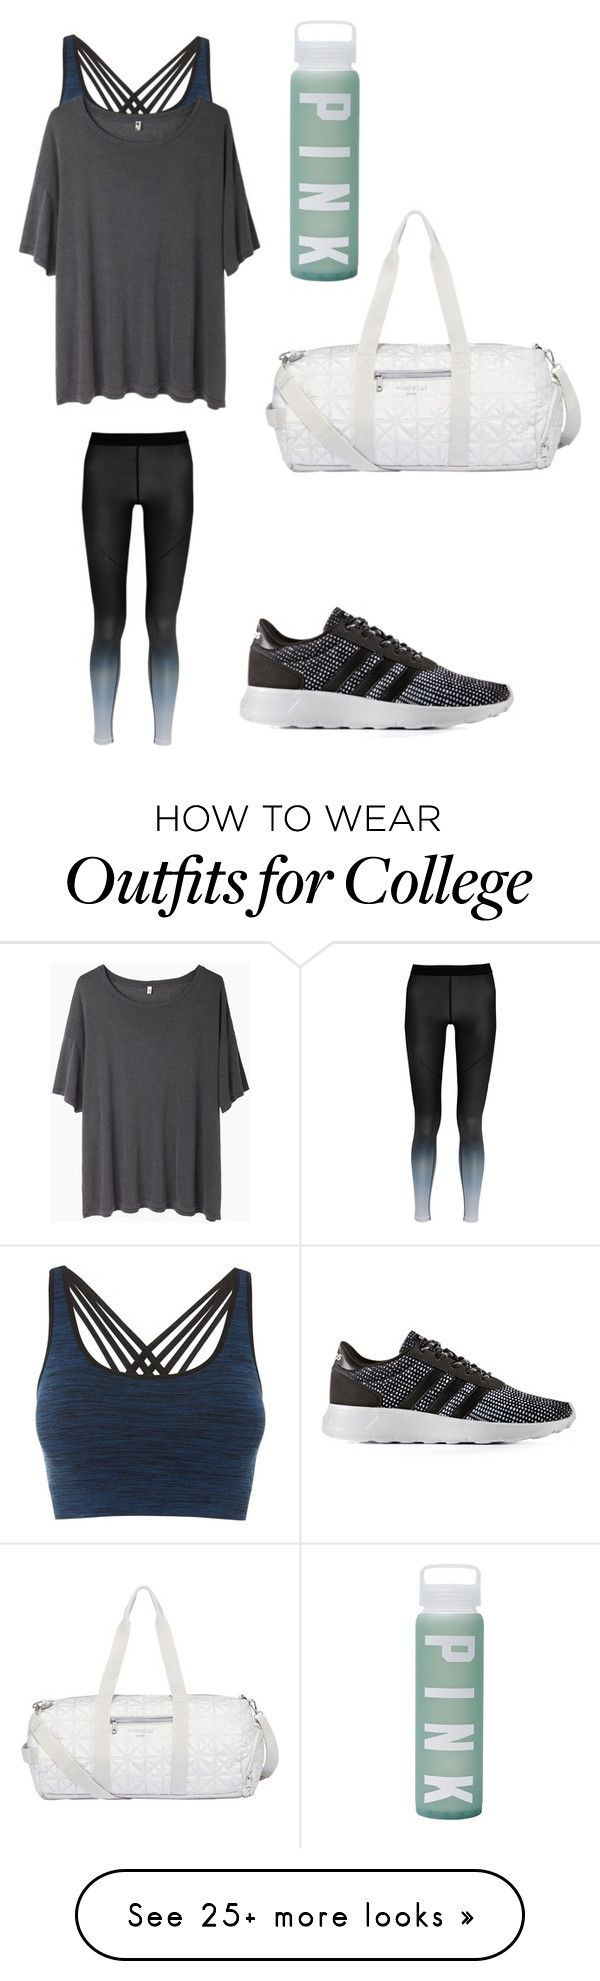 """""""Sporty day"""" by sarahfohlen on Polyvore featuring Pepper & Mayne, R13, adidas, NIKE, Fiorelli, Victoria's Secret, Winter and 2k18"""